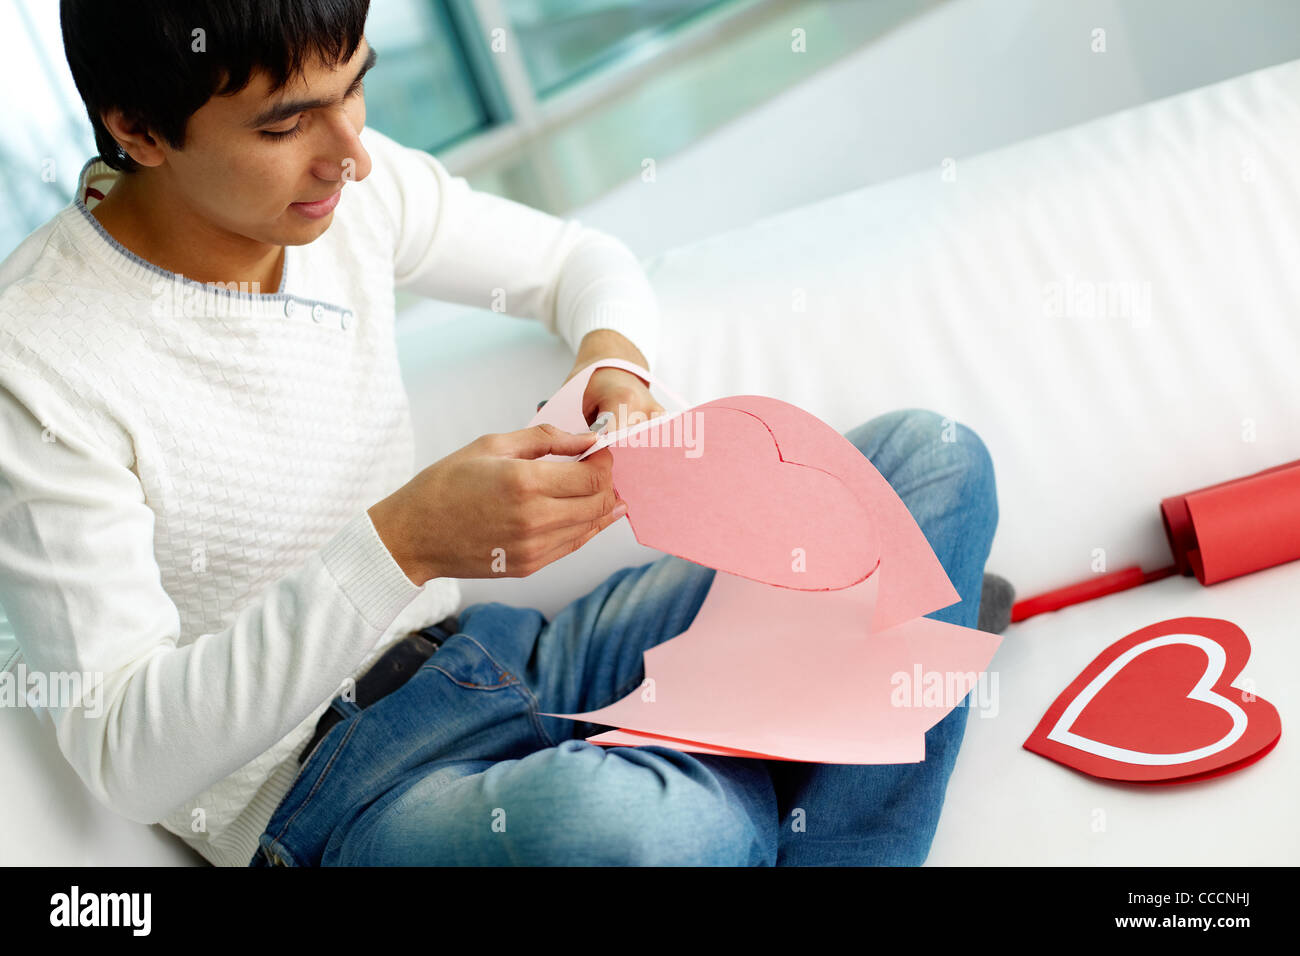 Image of handsome man cutting paper heart before St. Valentine day - Stock Image